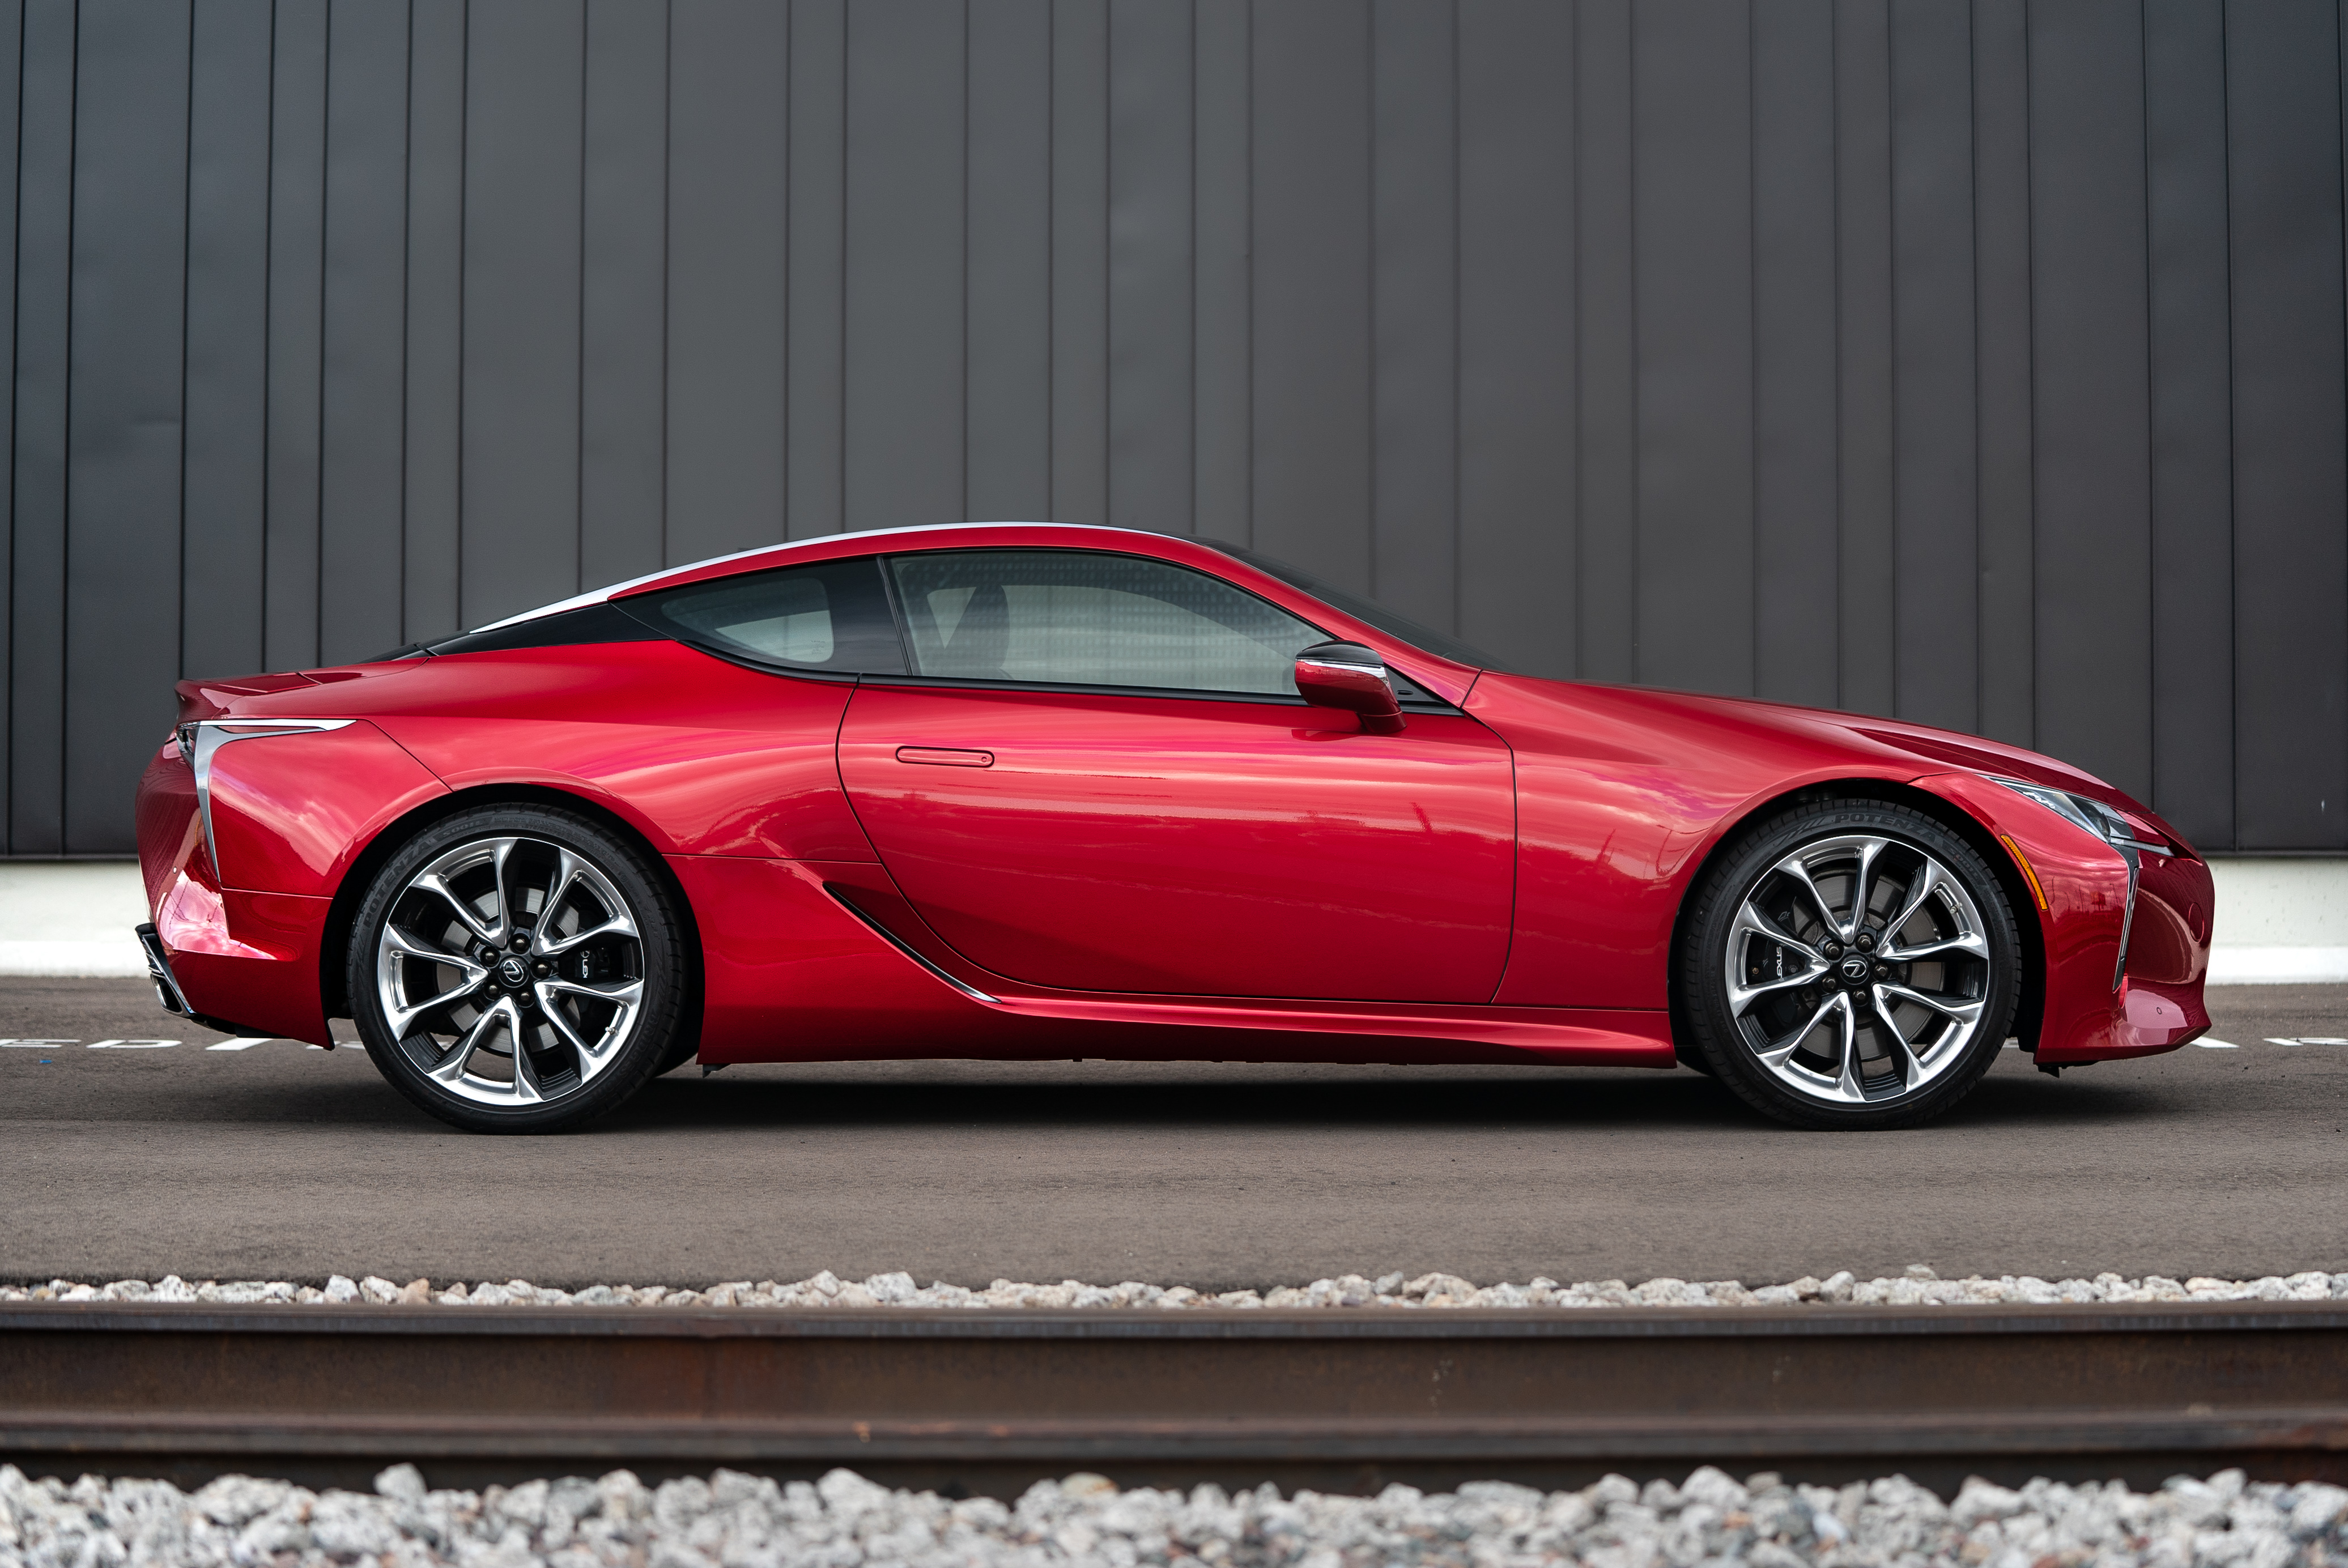 2019 Lexus LC500 side view